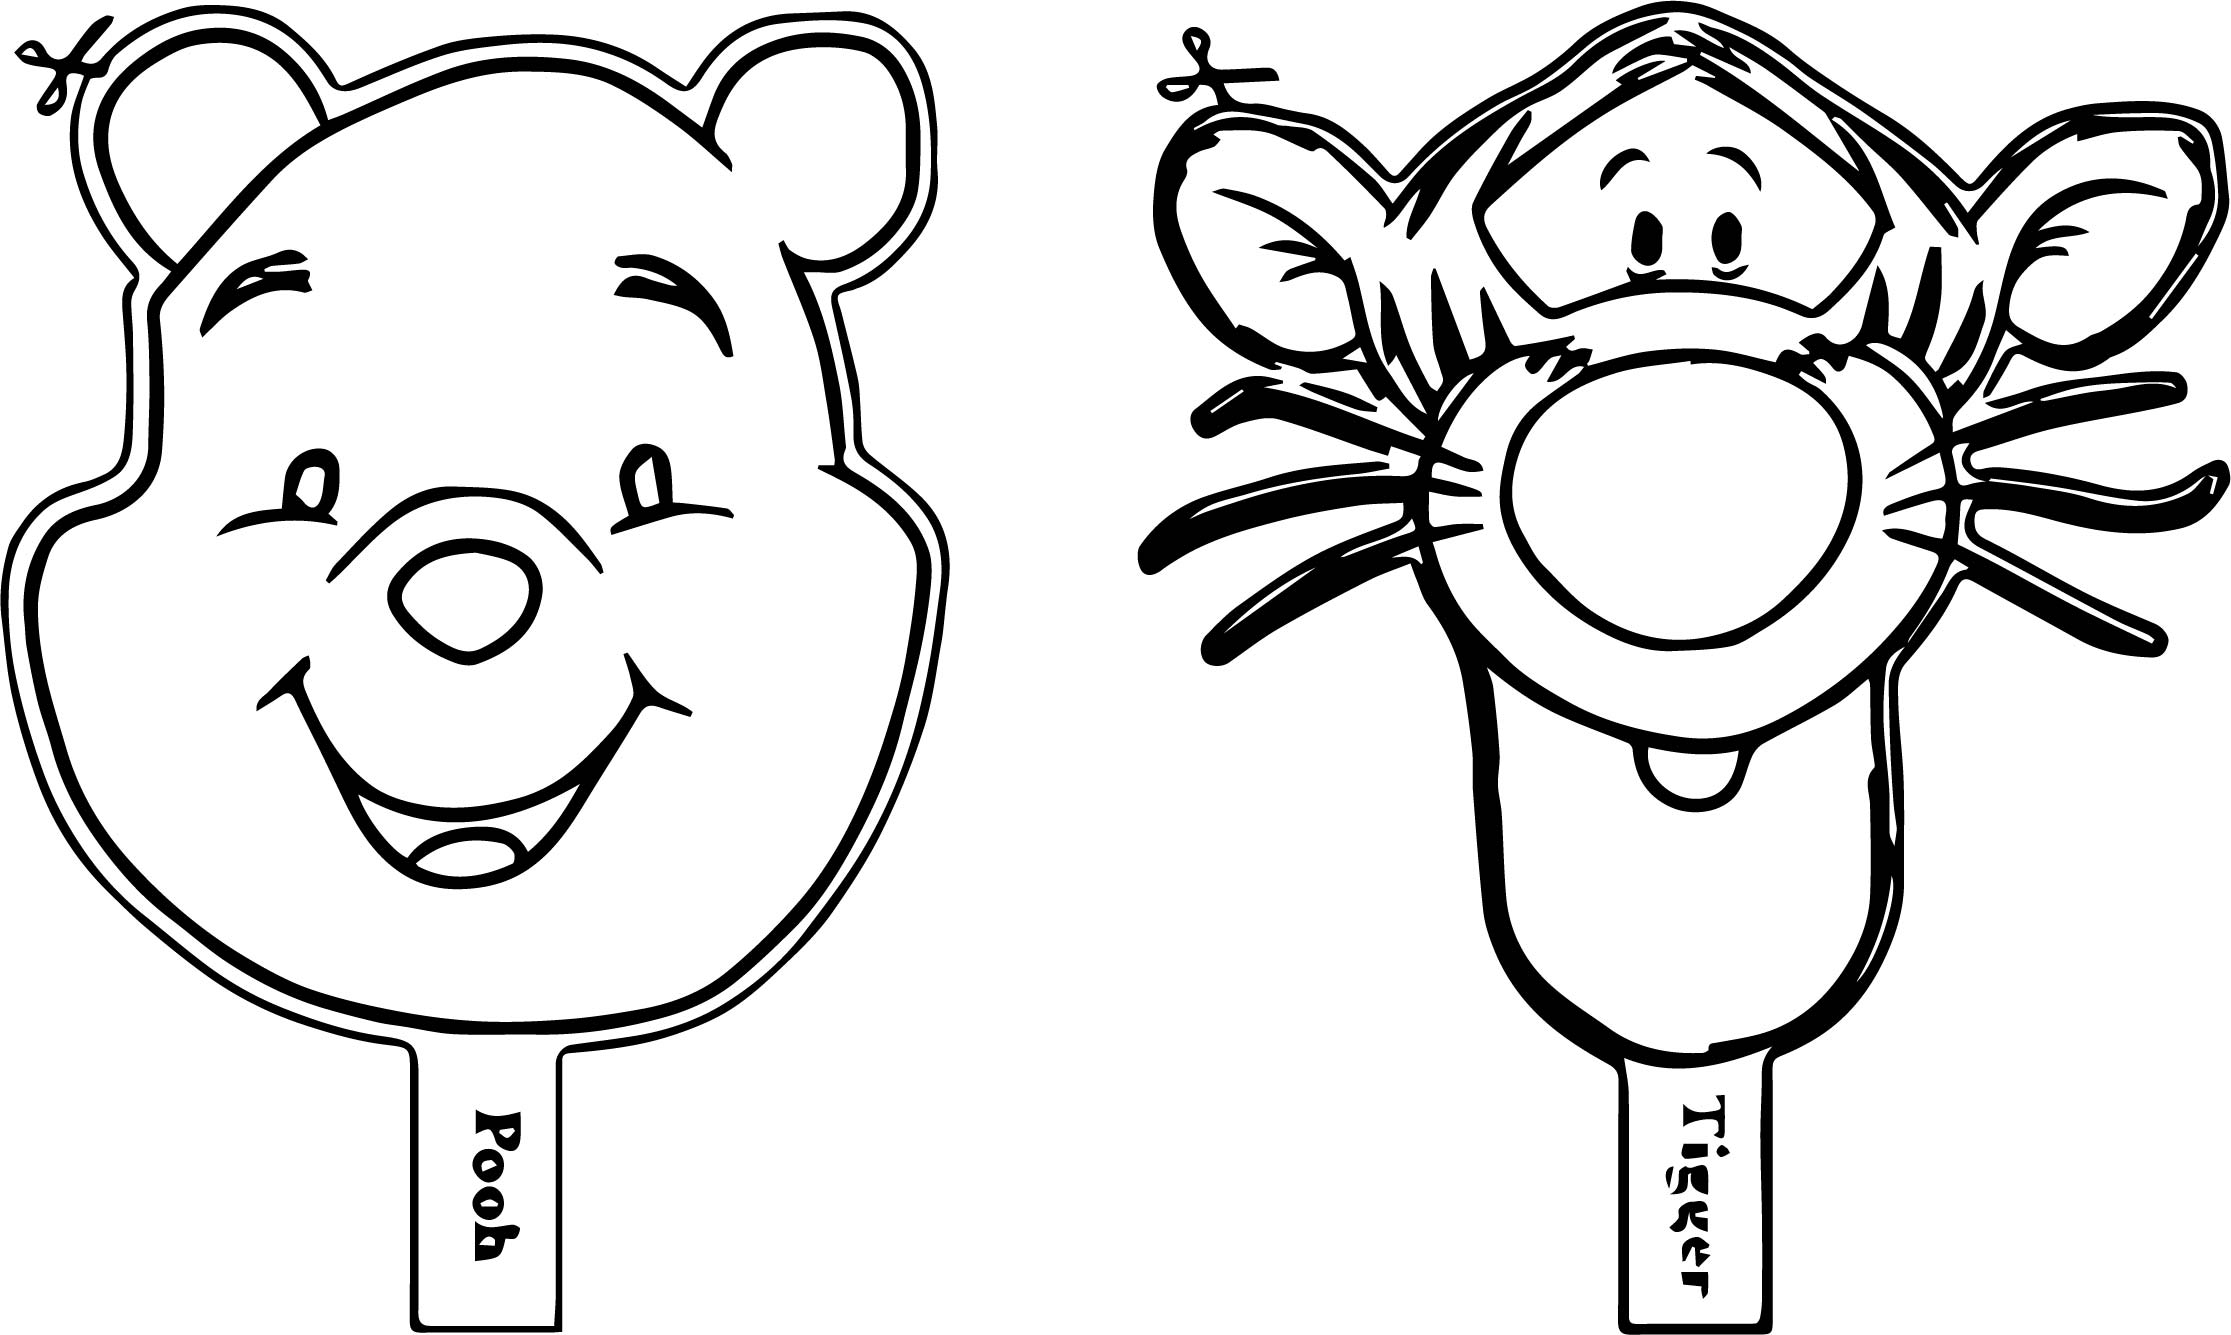 Pooh tigger coloring page for Tigger and pooh coloring pages